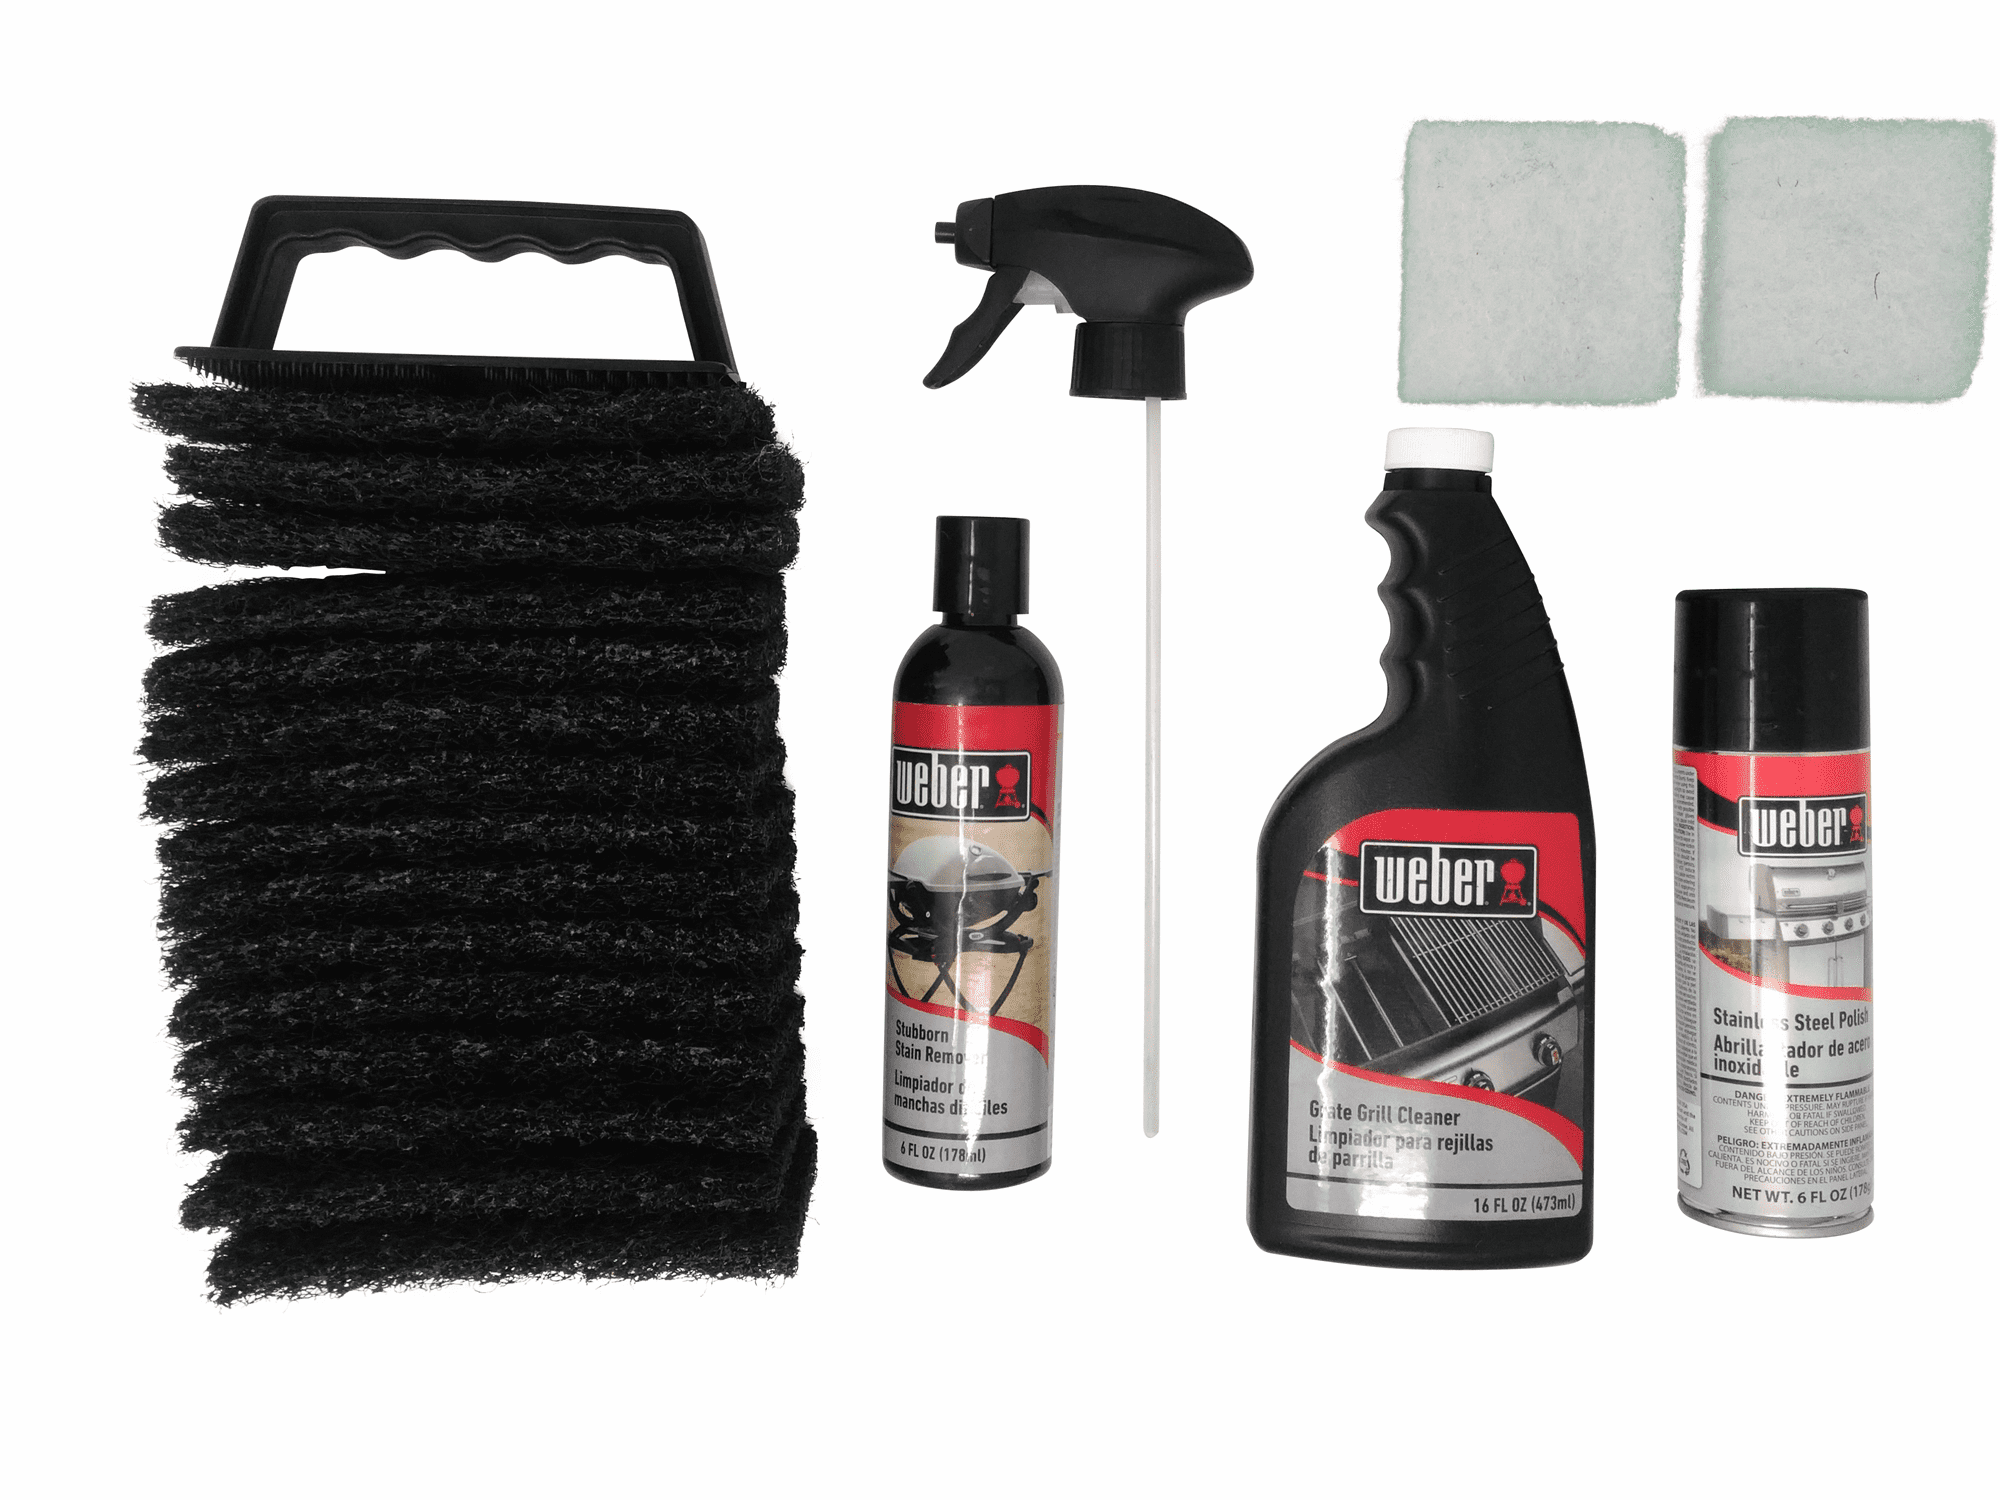 W78 | Weber Grill Cleaning Kit, W78